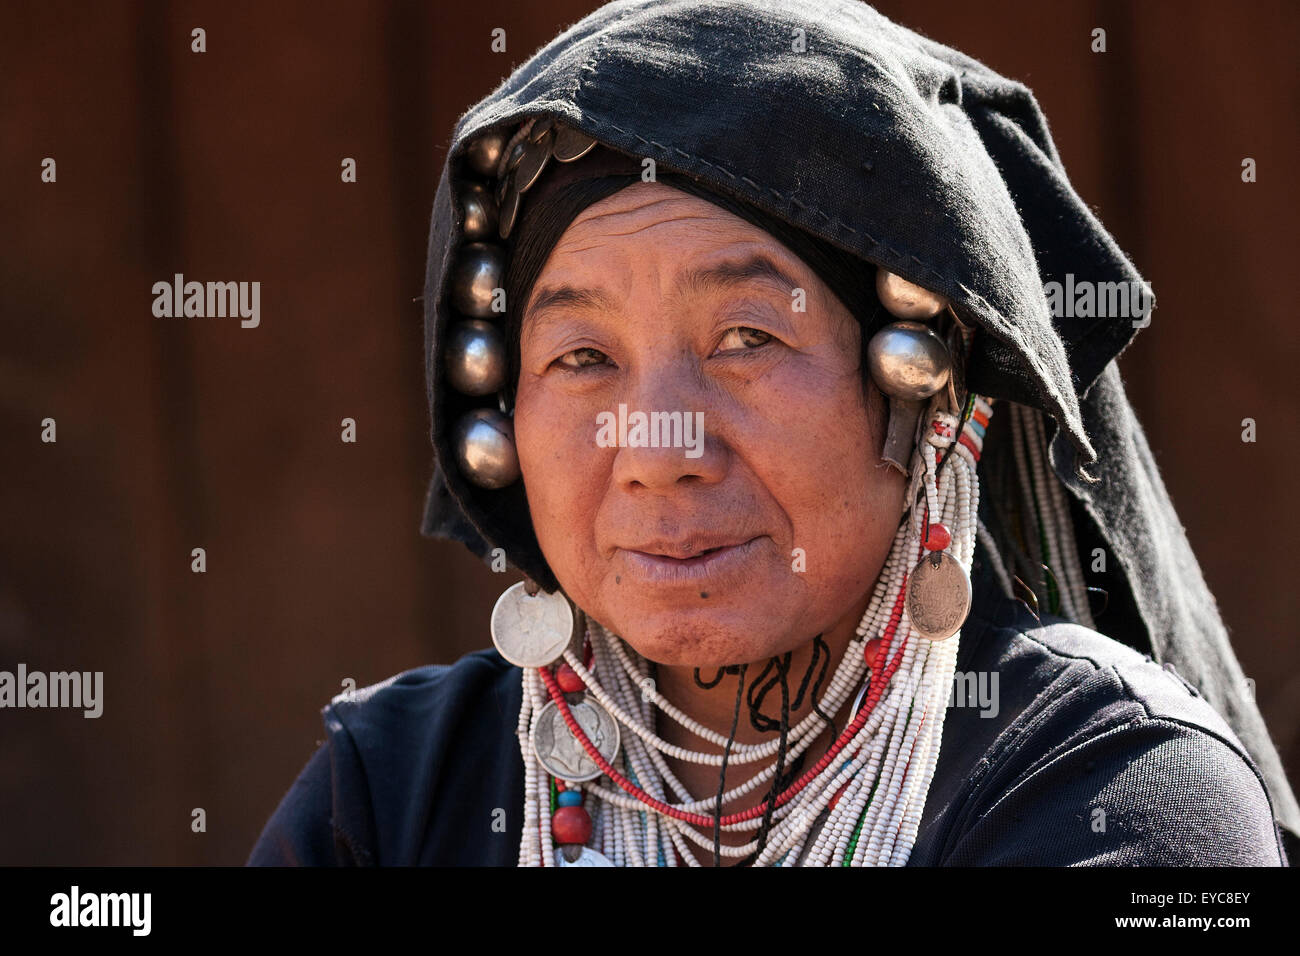 Local woman from the Akha tribe with typical headdress, portrait, Hokyin Akha Village, near Kyaing Tong, Shan State - Stock Image